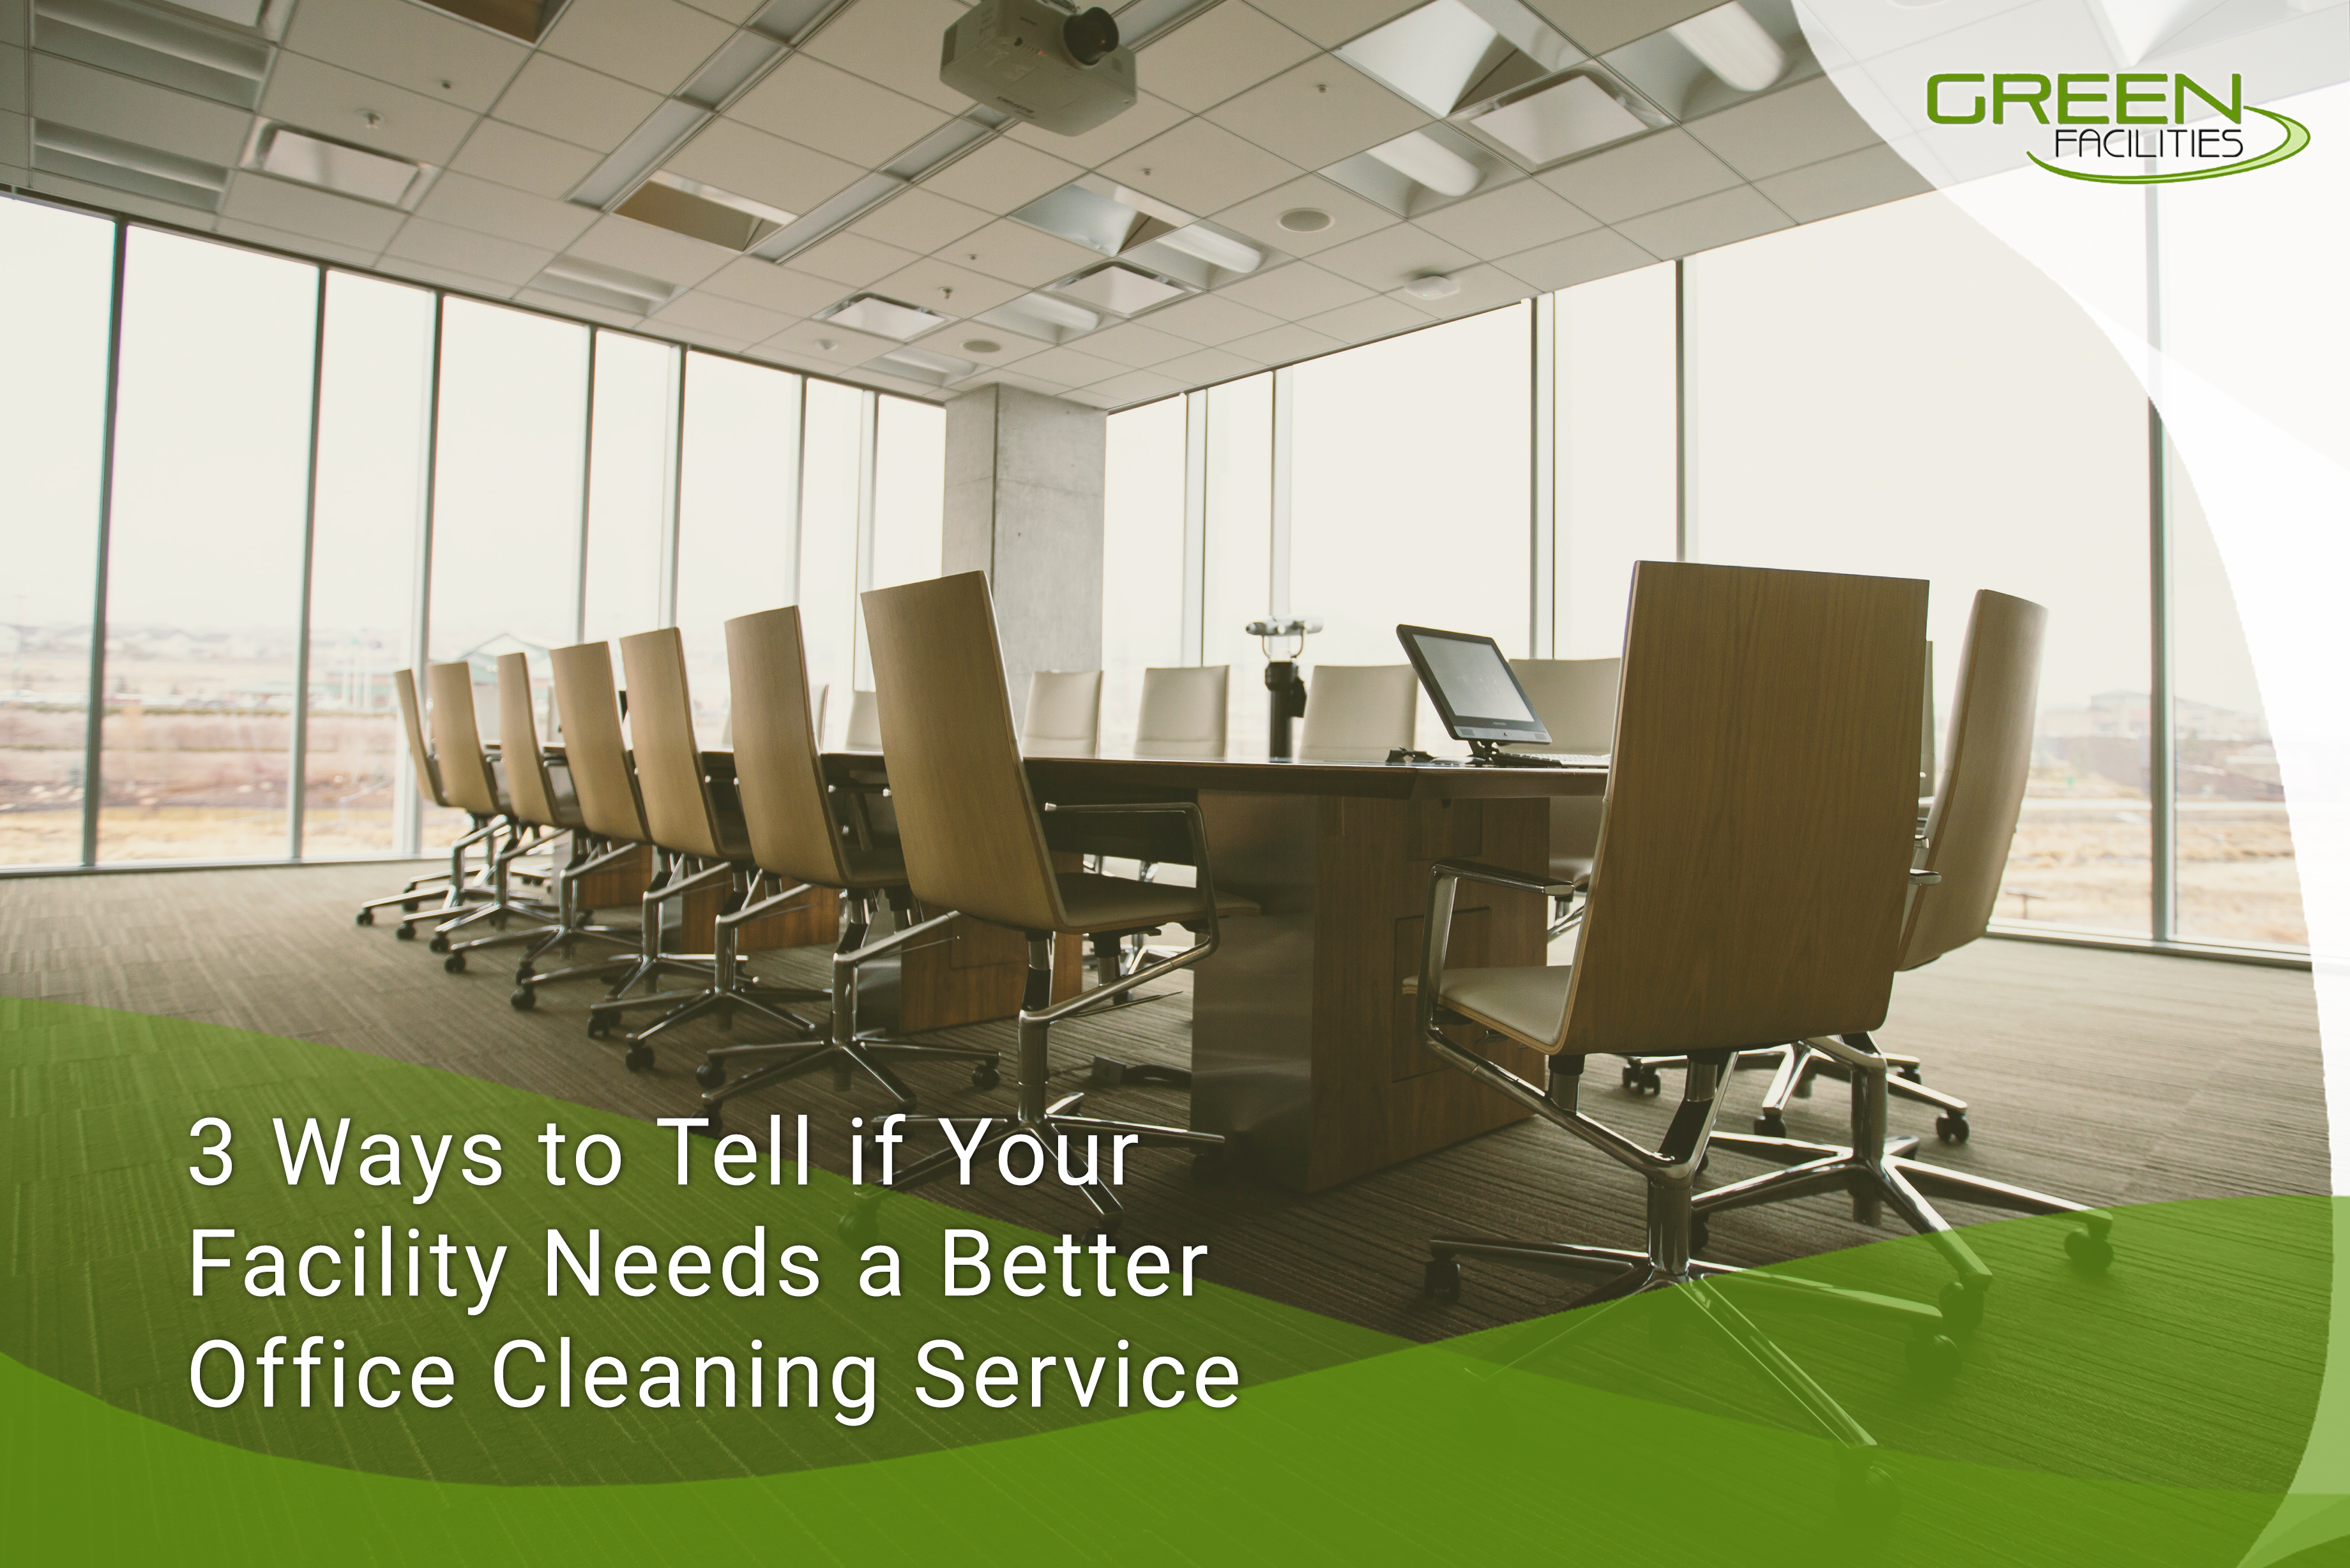 3 Ways to Tell if Your Facility Needs A Better Office Cleaning Service